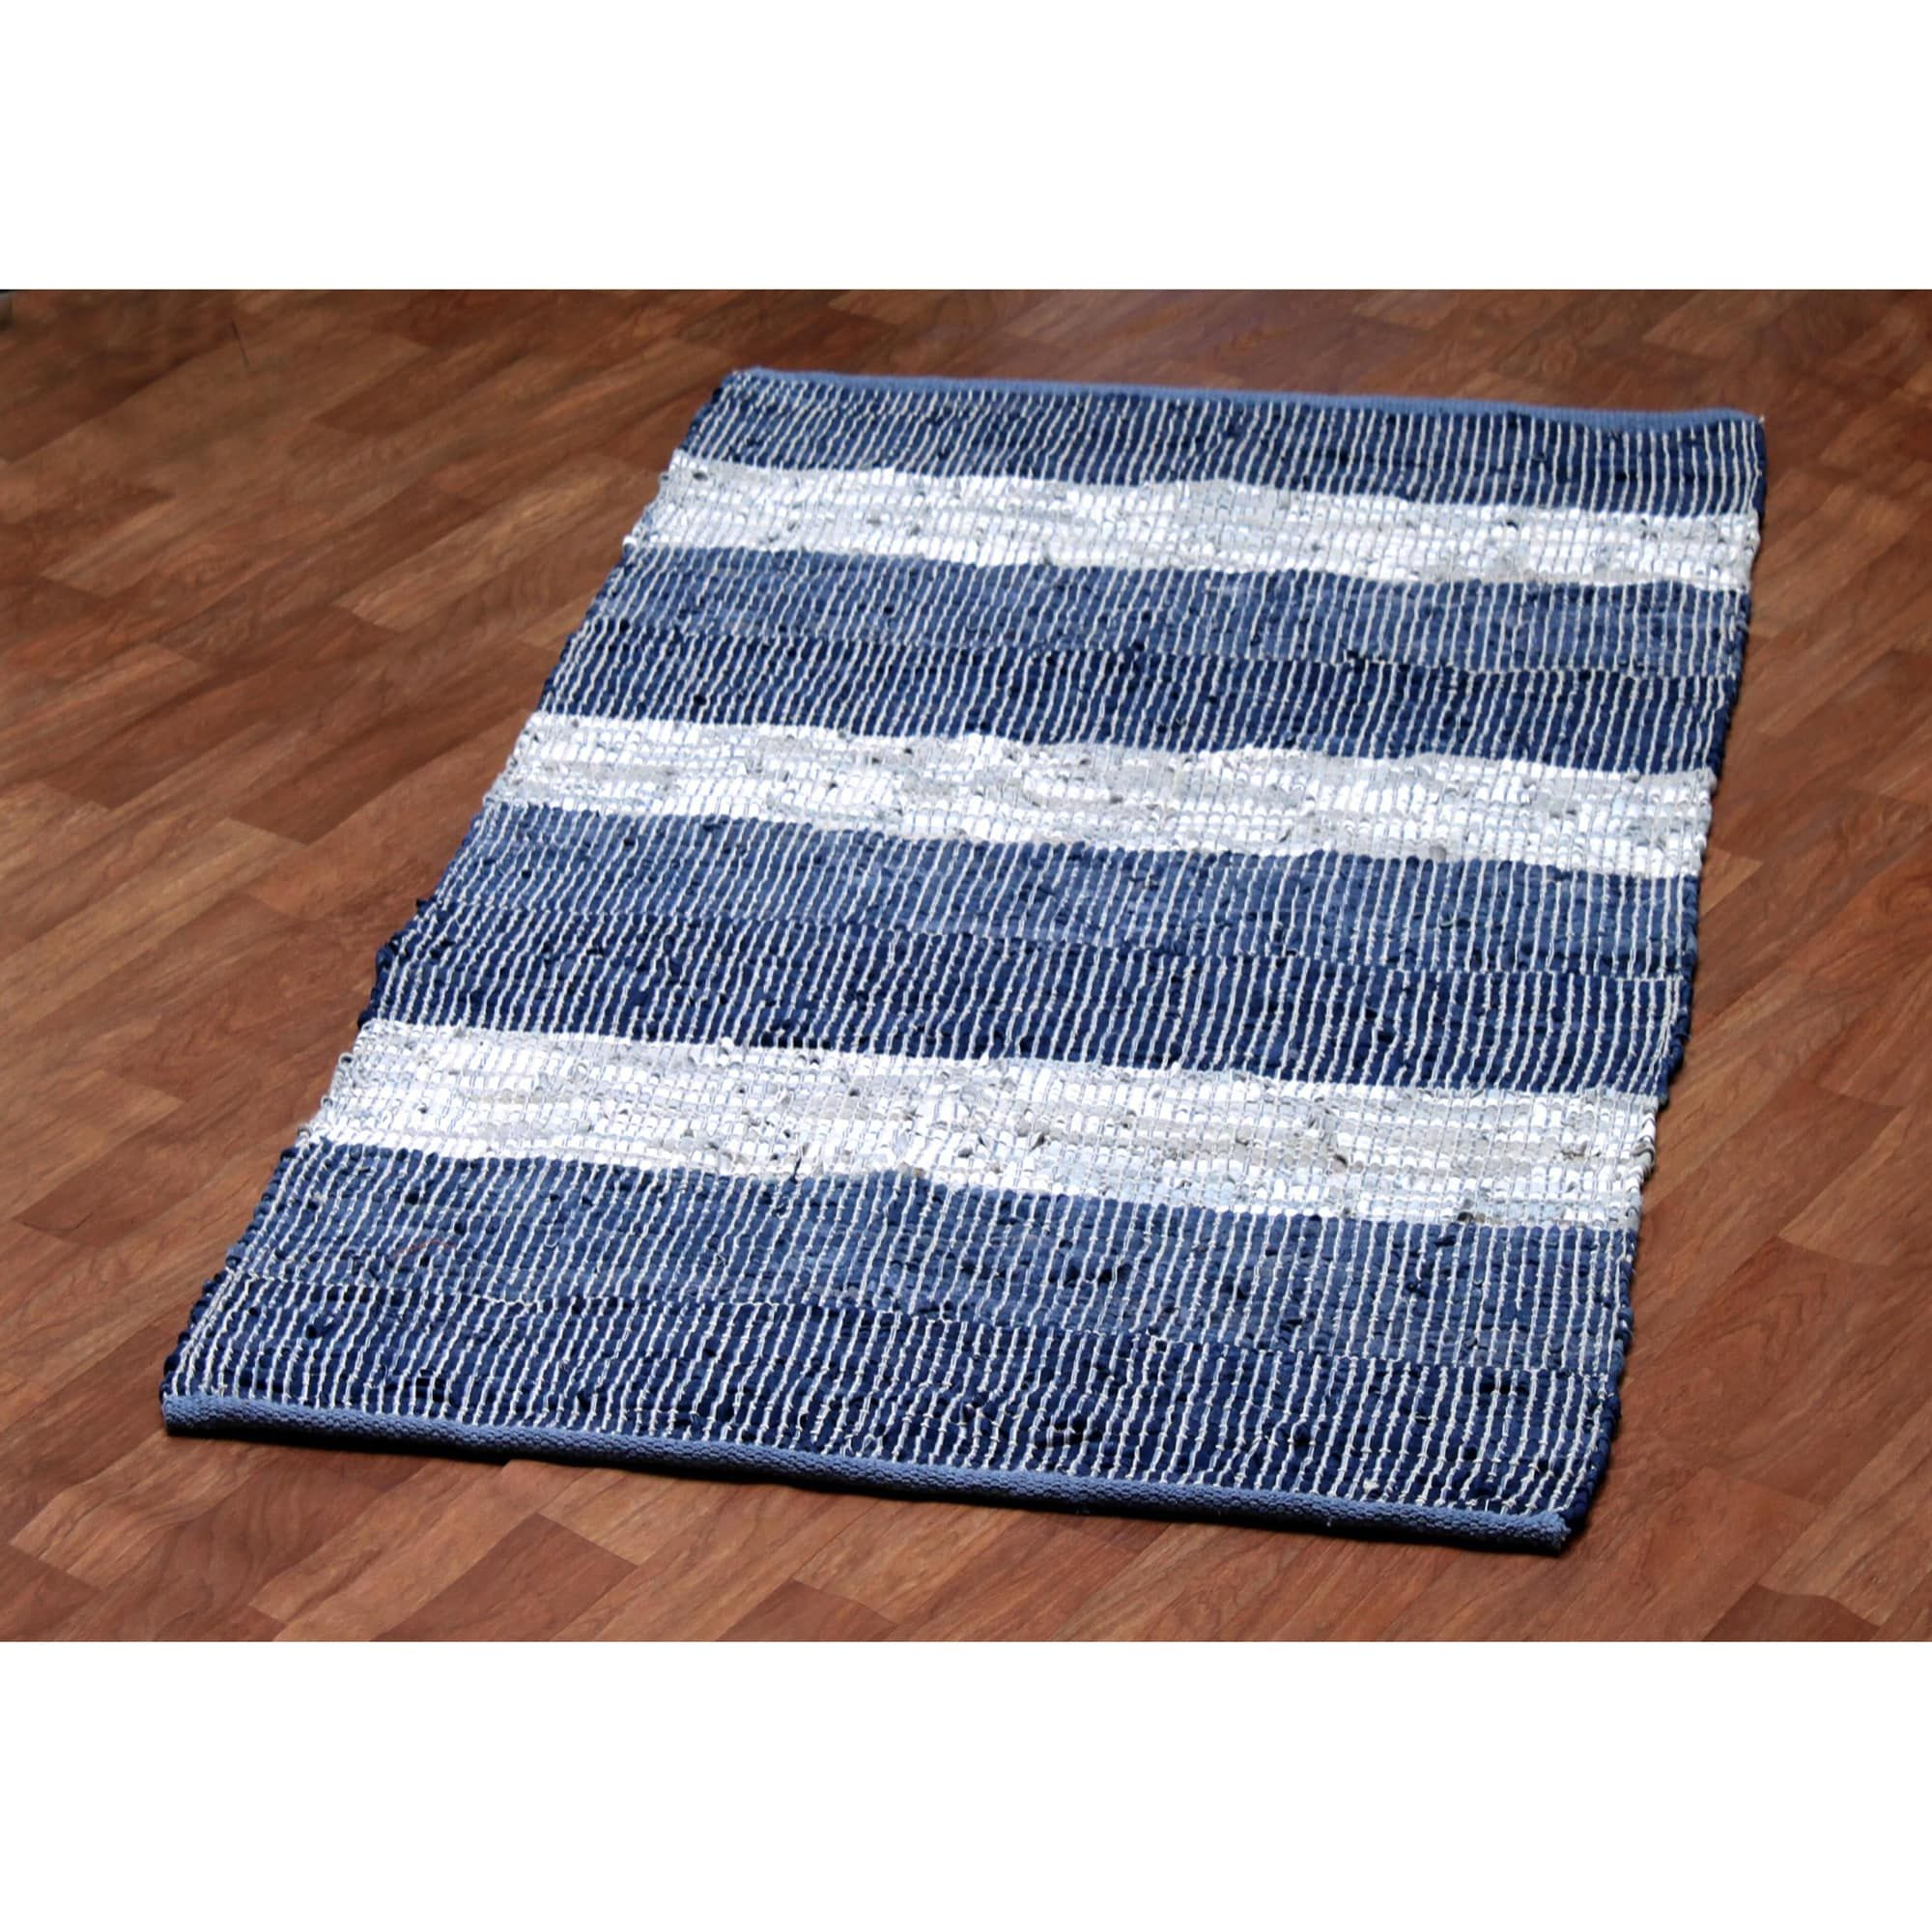 Hand Woven Matador Blue Stripe Leather Rug 8 X 10 8 X 10